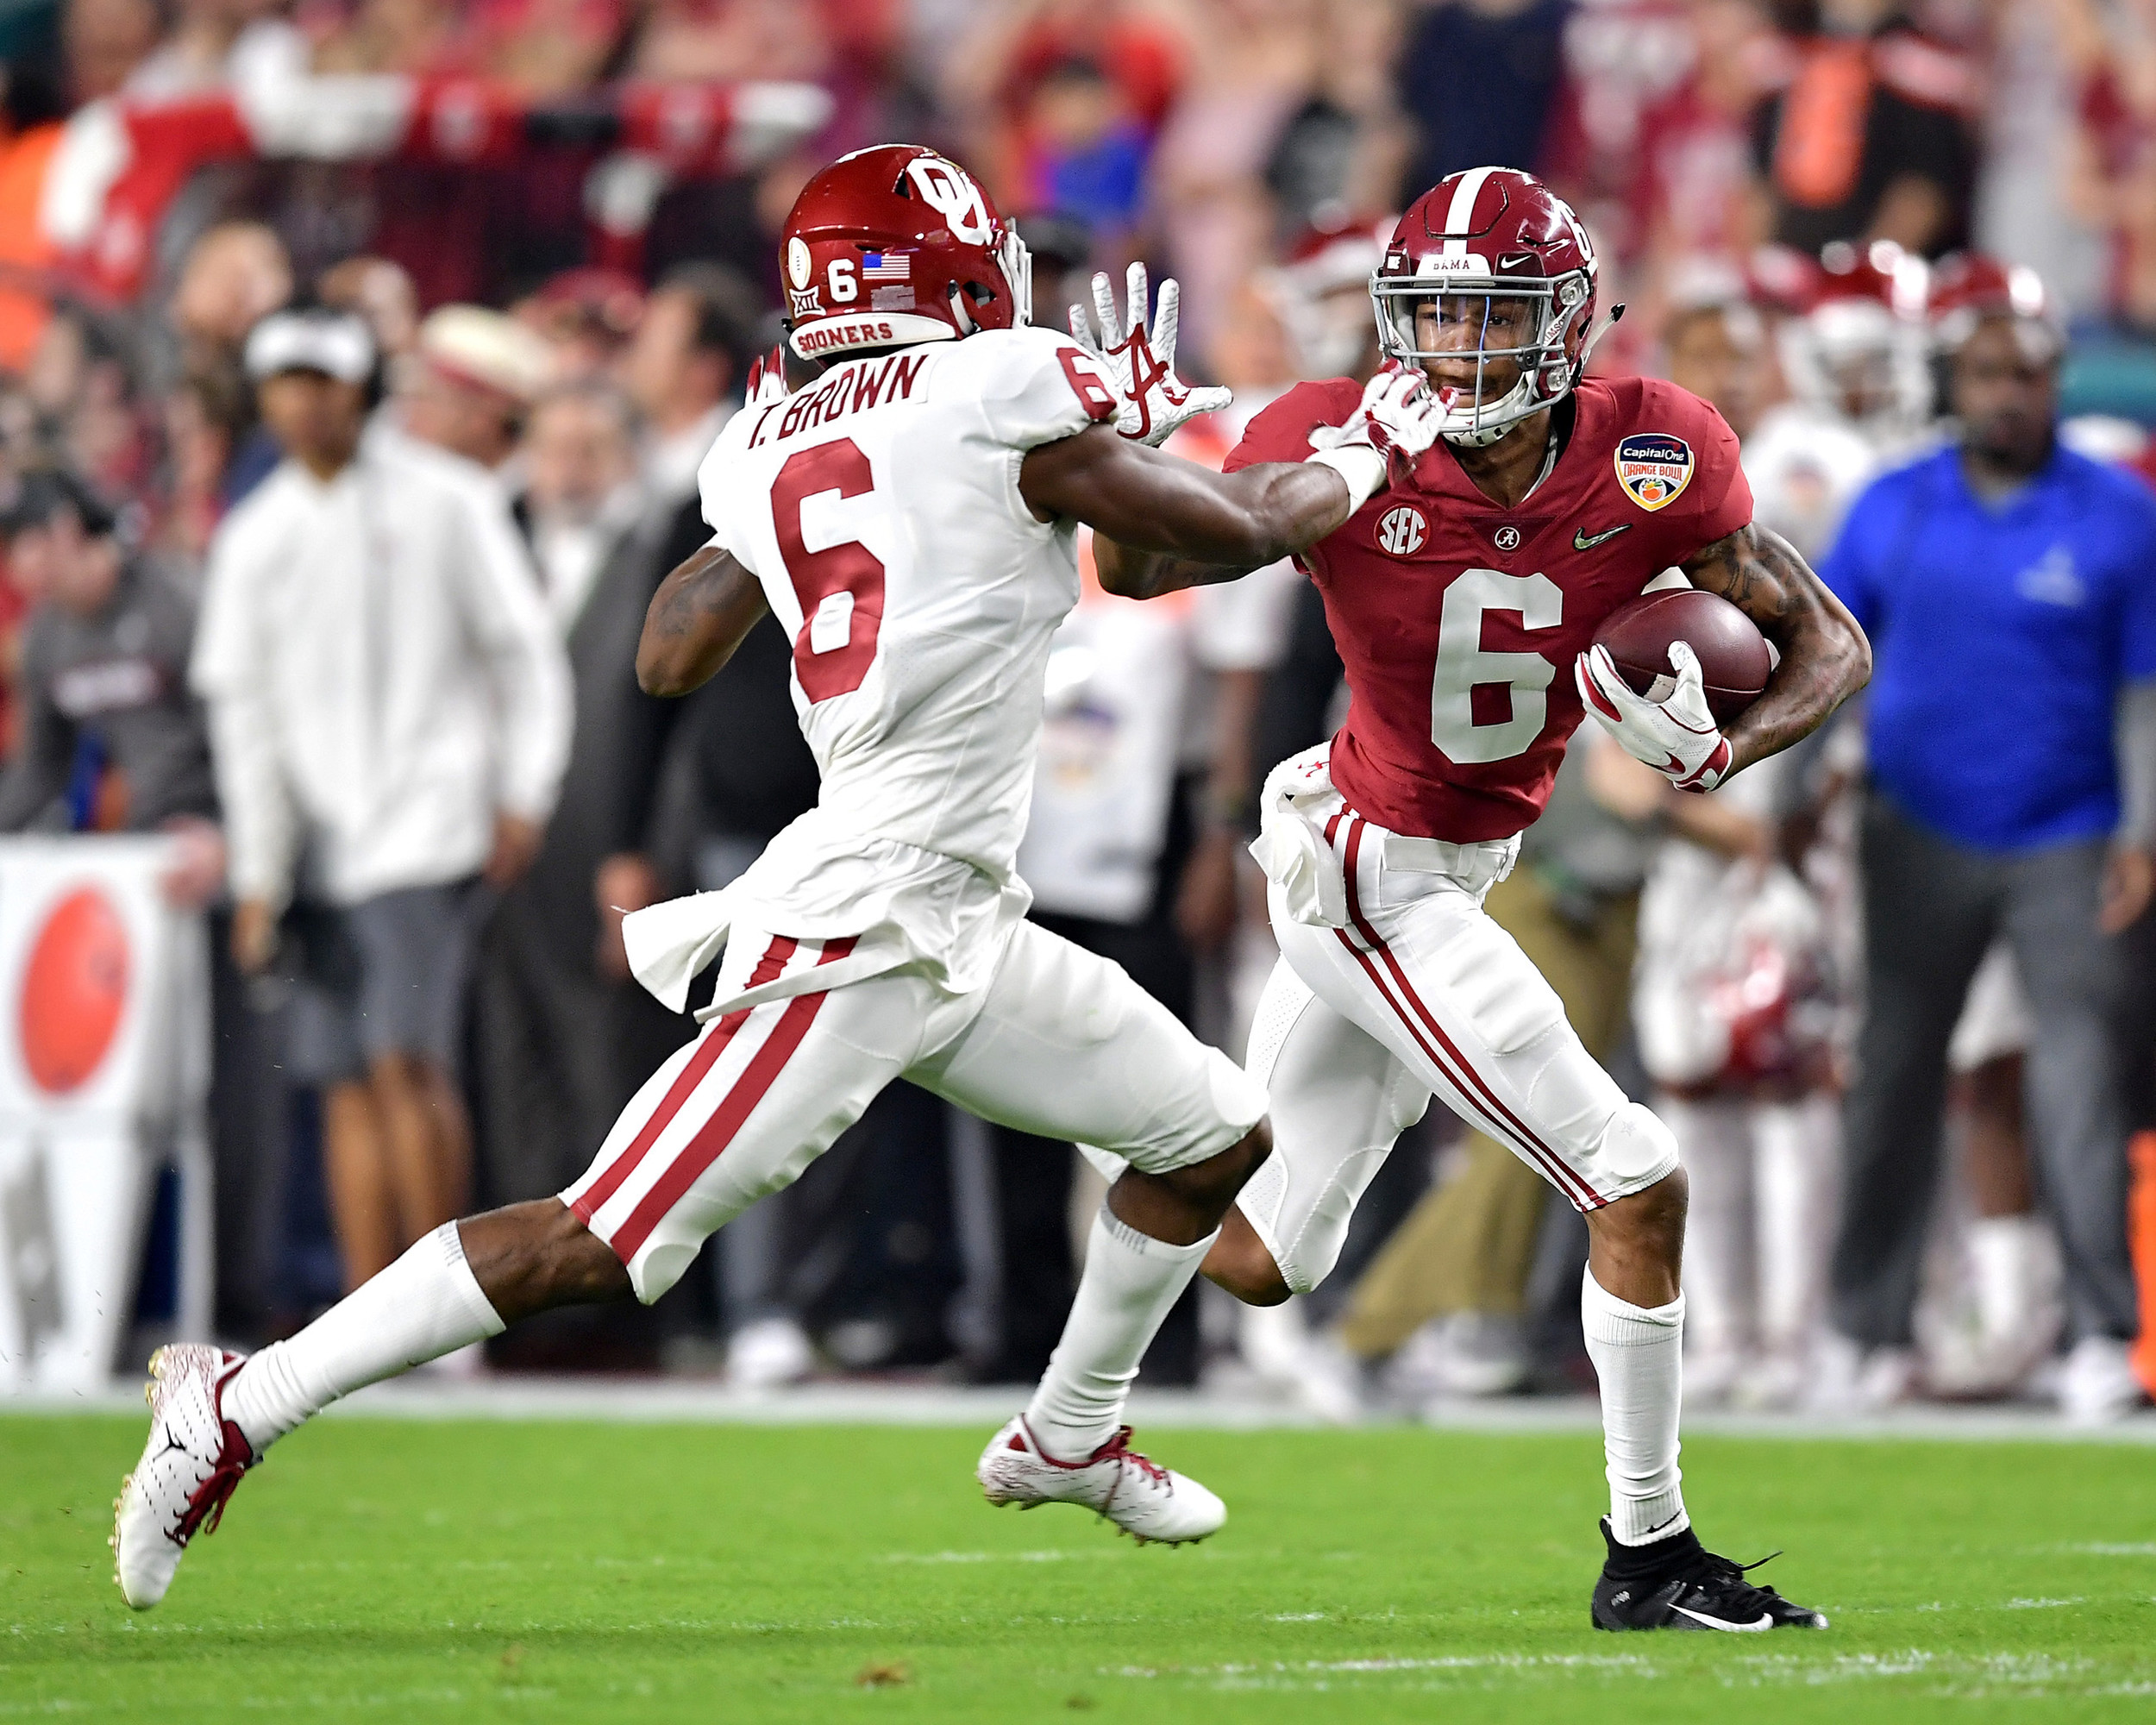 An early possession and first down for Alabama Crimson Tide wide receiver DeVonta Smith (6) during the first quarter of the Capital One Orange Bowl, featuring Alabama and the Oklahoma Sooners, at Hard Rock Stadium in Miami Gardens, Fla., Saturday, Dec. 29, 2018. Alabama wins 45-34. (Photo by Lee Walls)